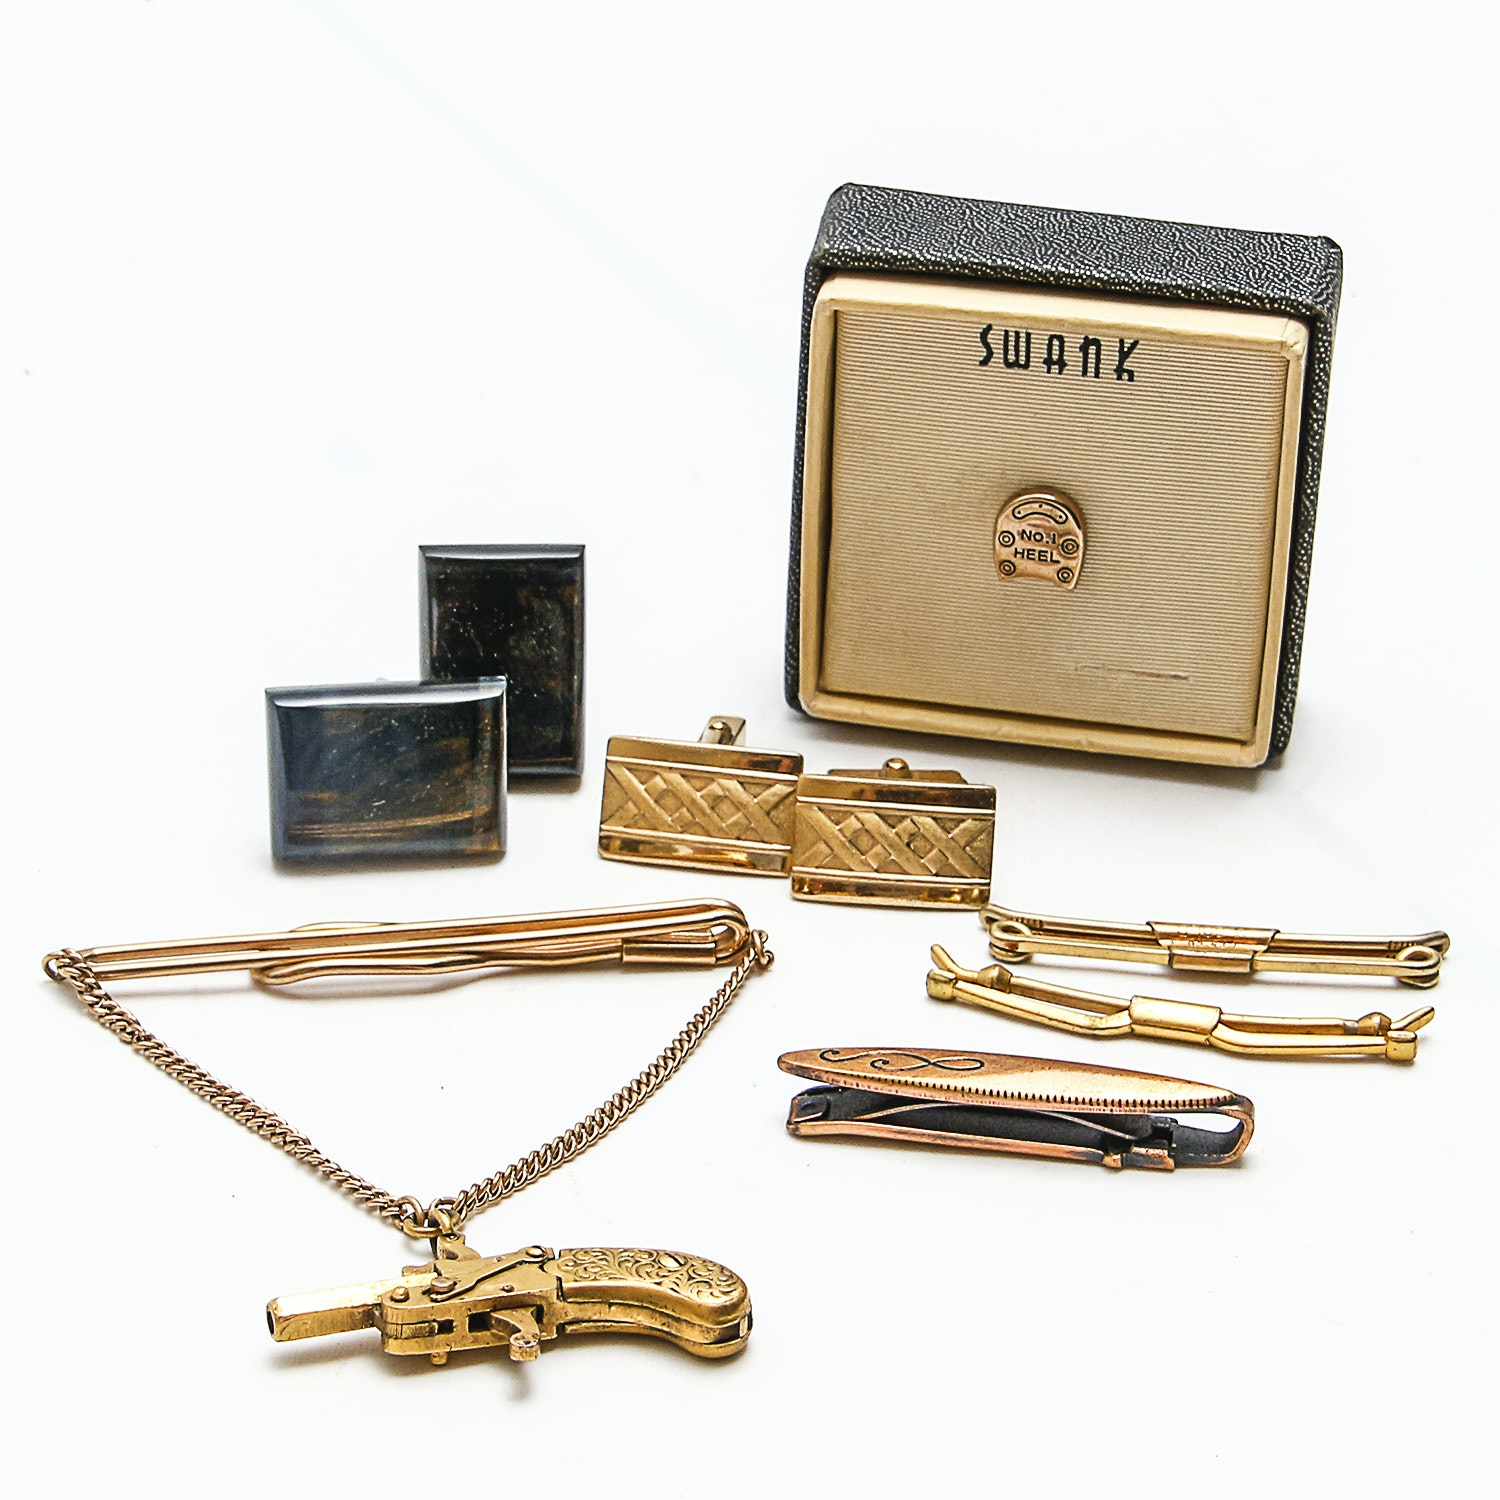 Collection of Vintage Cufflinks and Tie Clips Featuring Swank